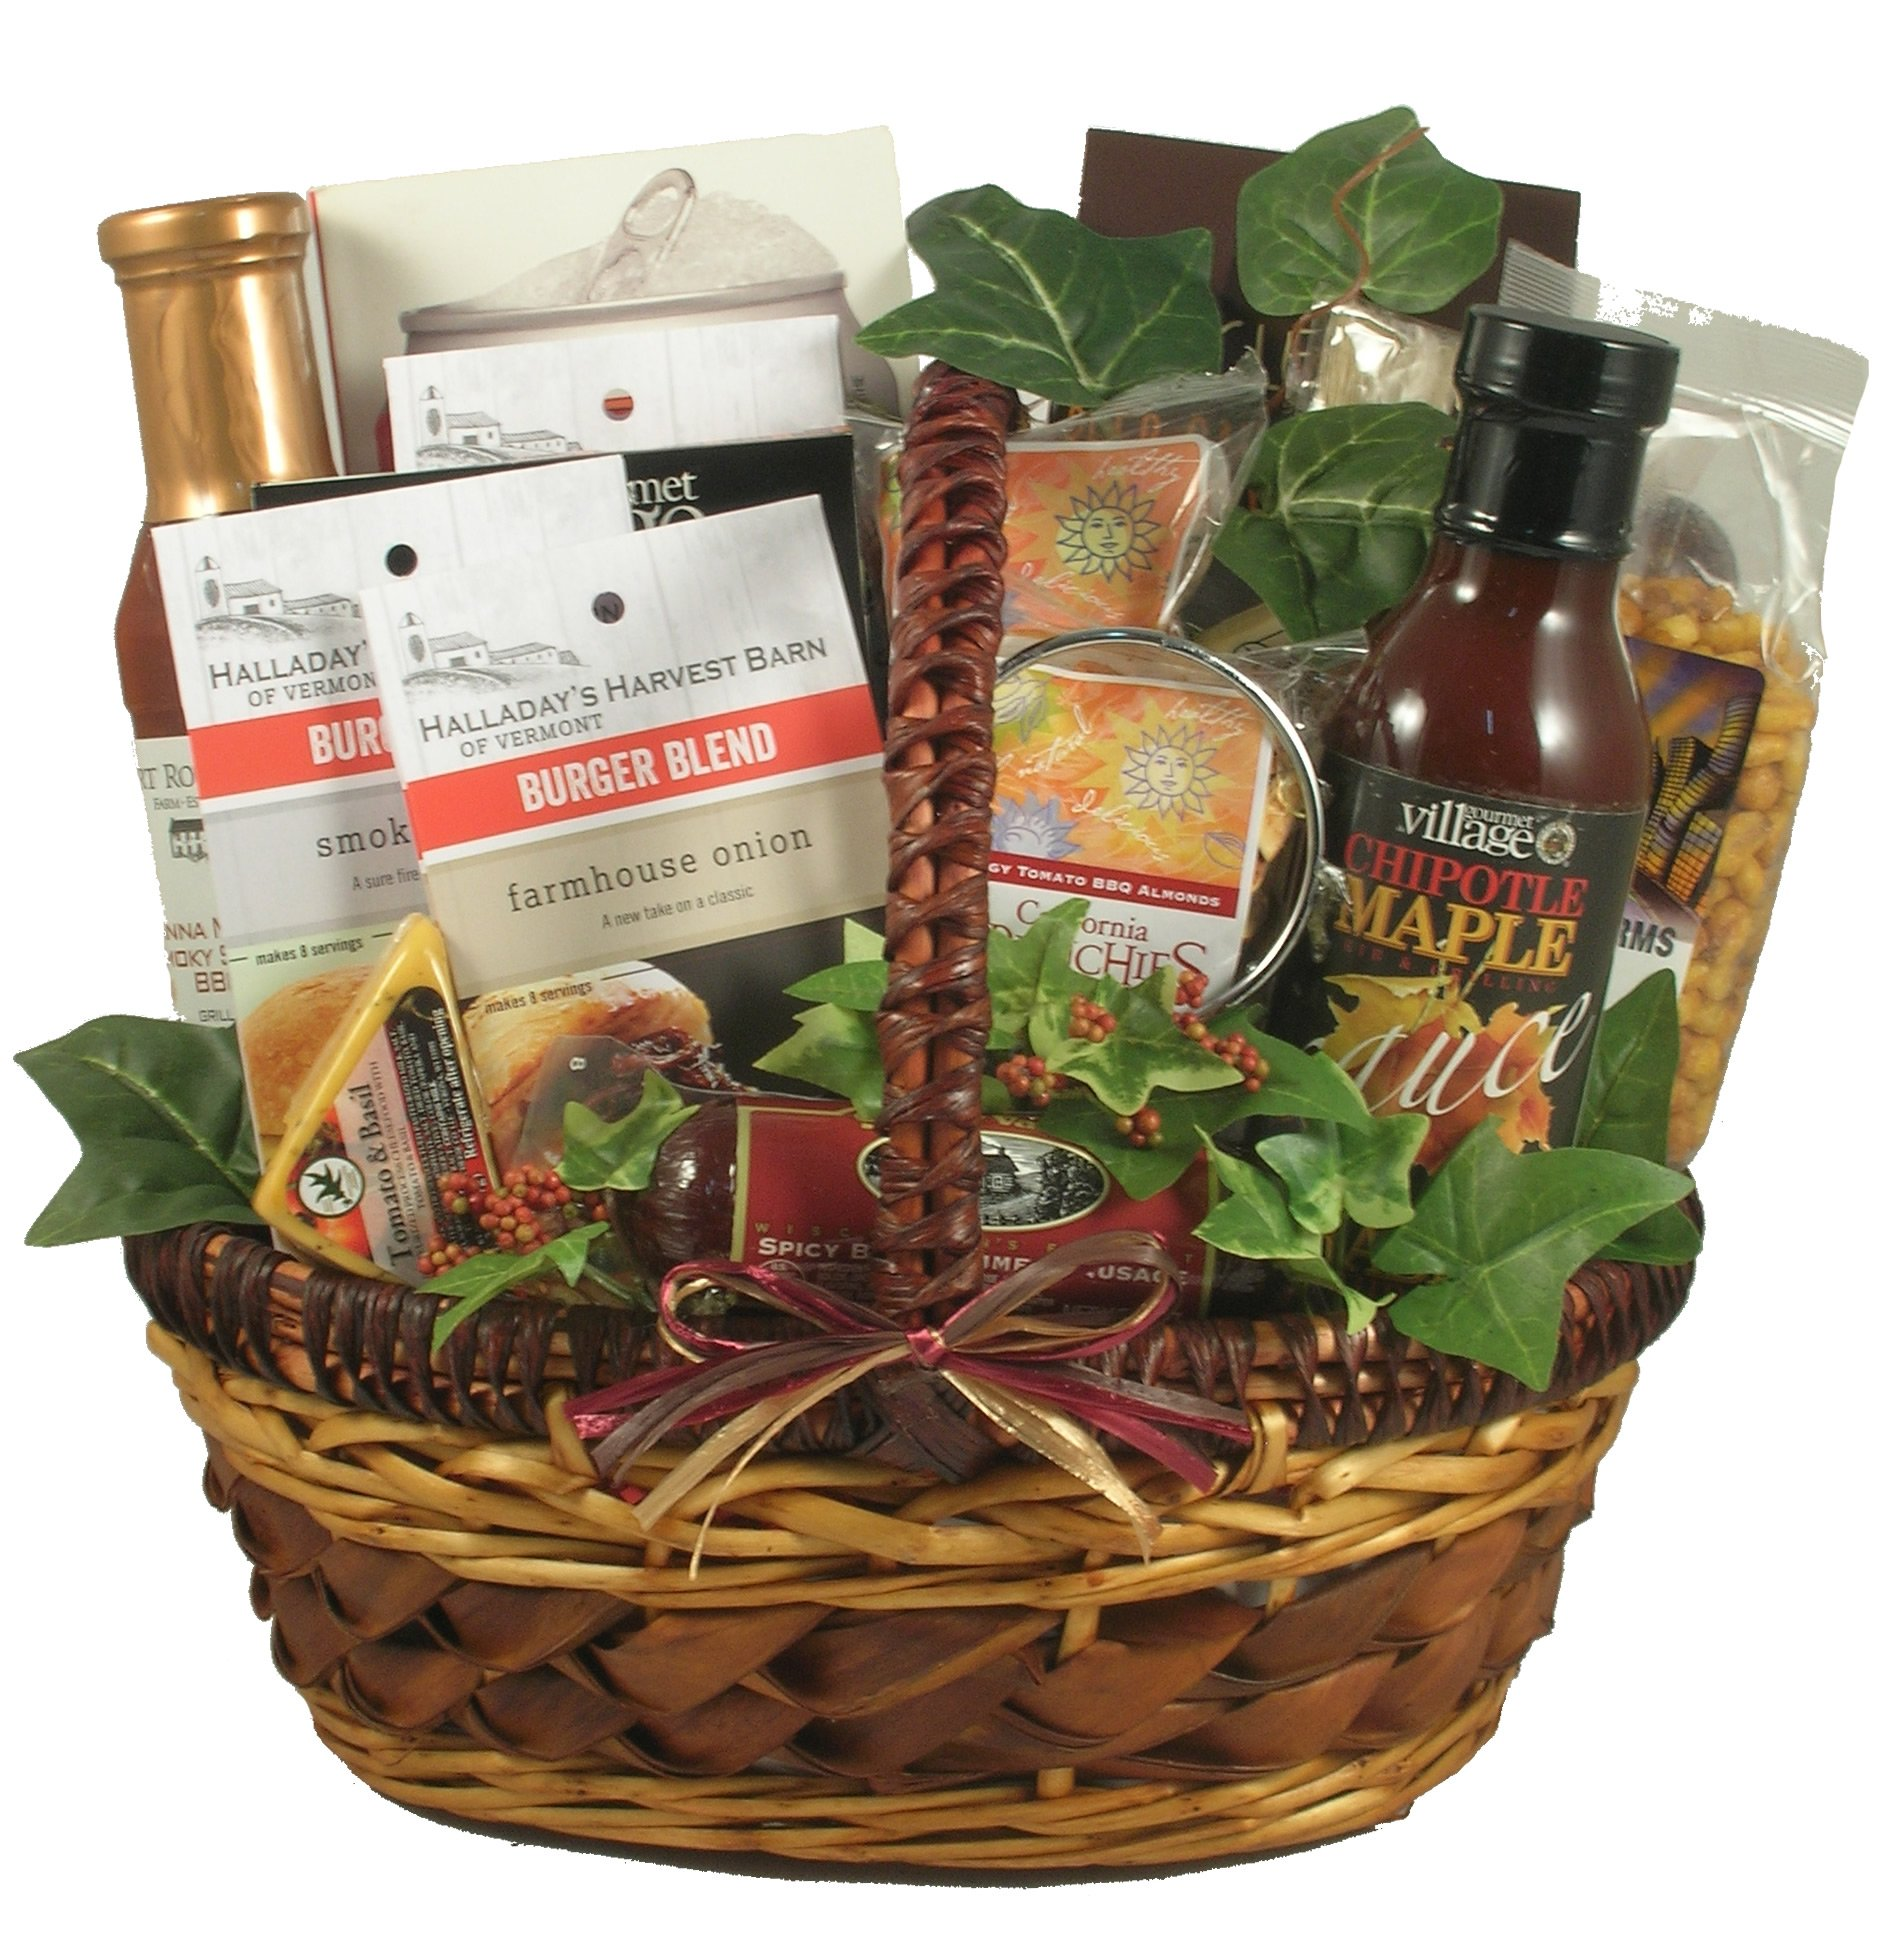 King Of The Grill - Grilling Gift Basket For Men With Rubs, Recipes, Beer Can Chicken Roaster, Sauces, 9 lb